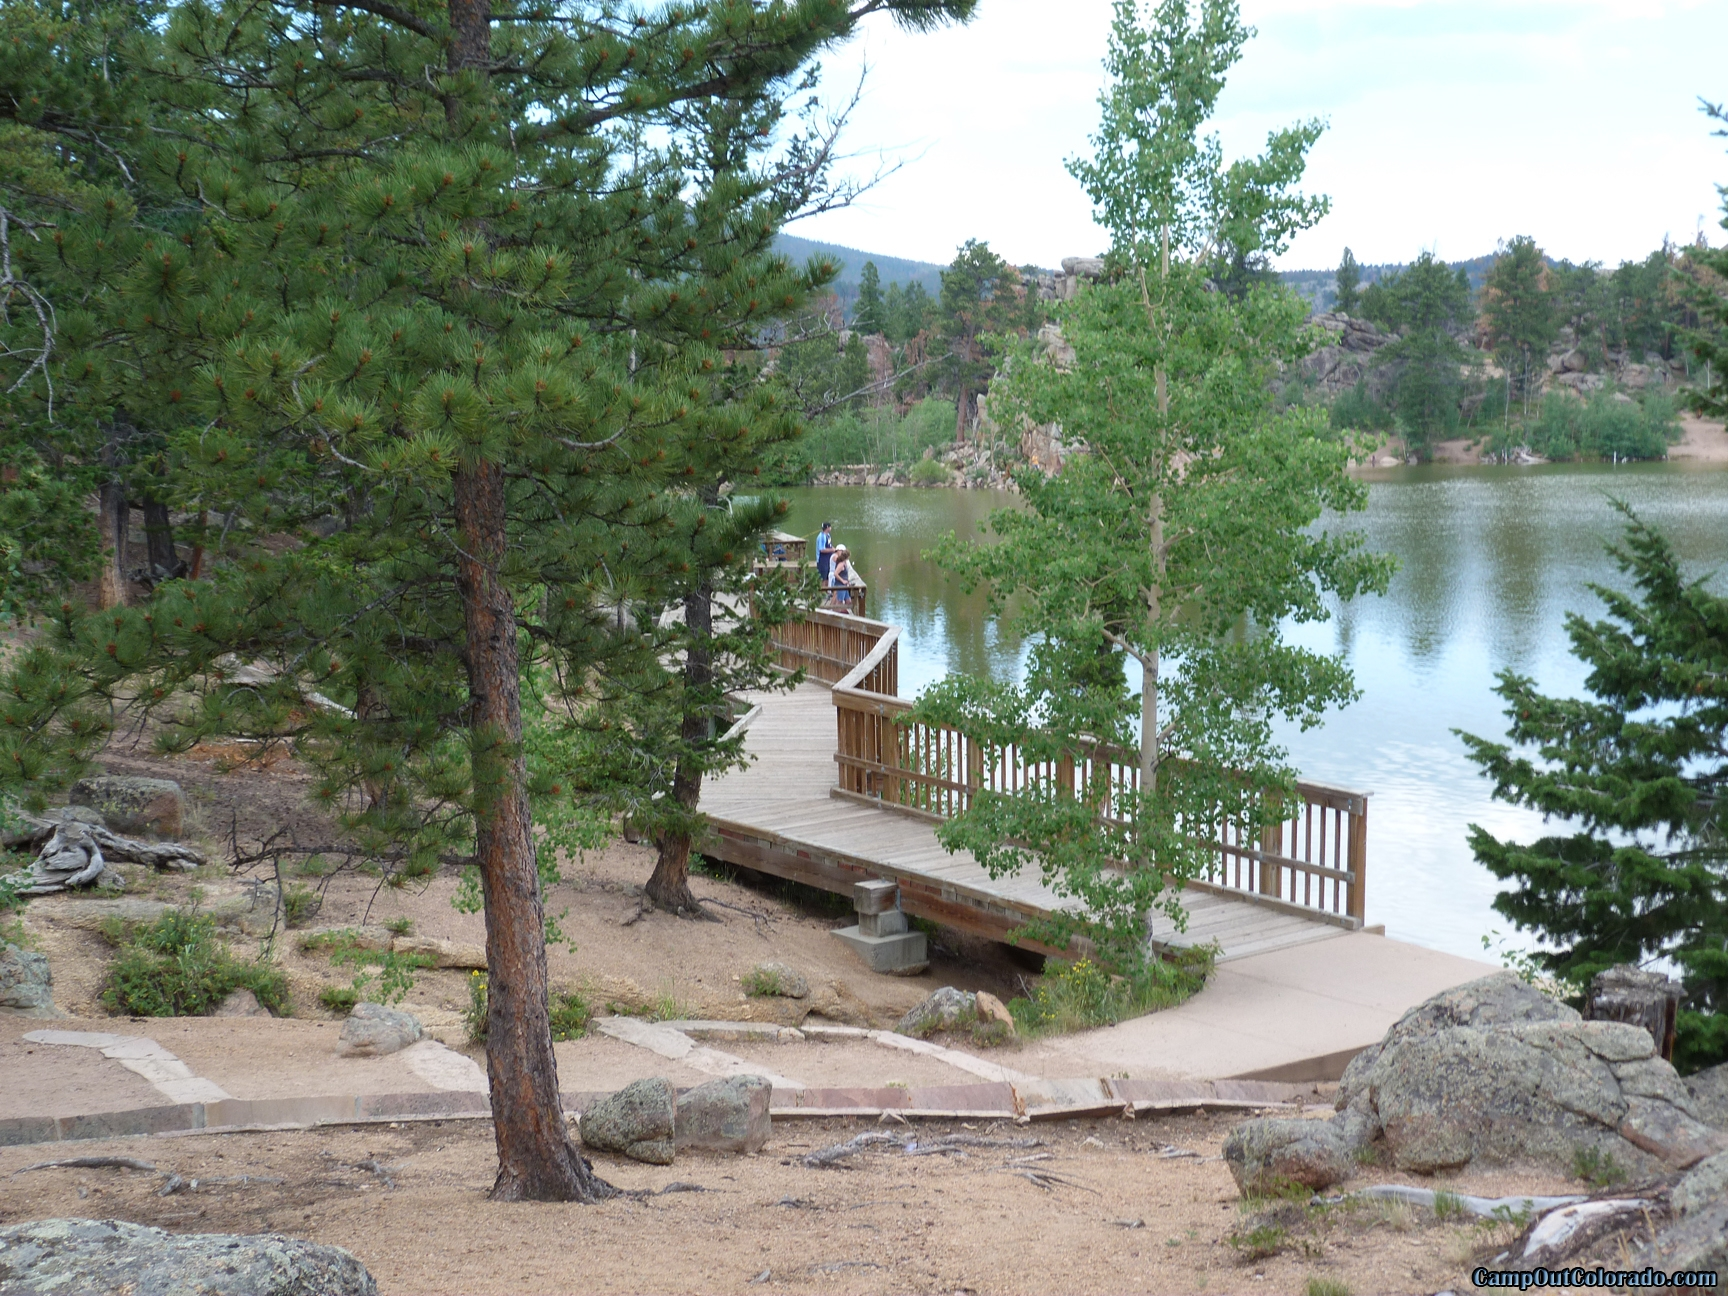 camp-out-colorado-bellaire-lake-path-to-lake